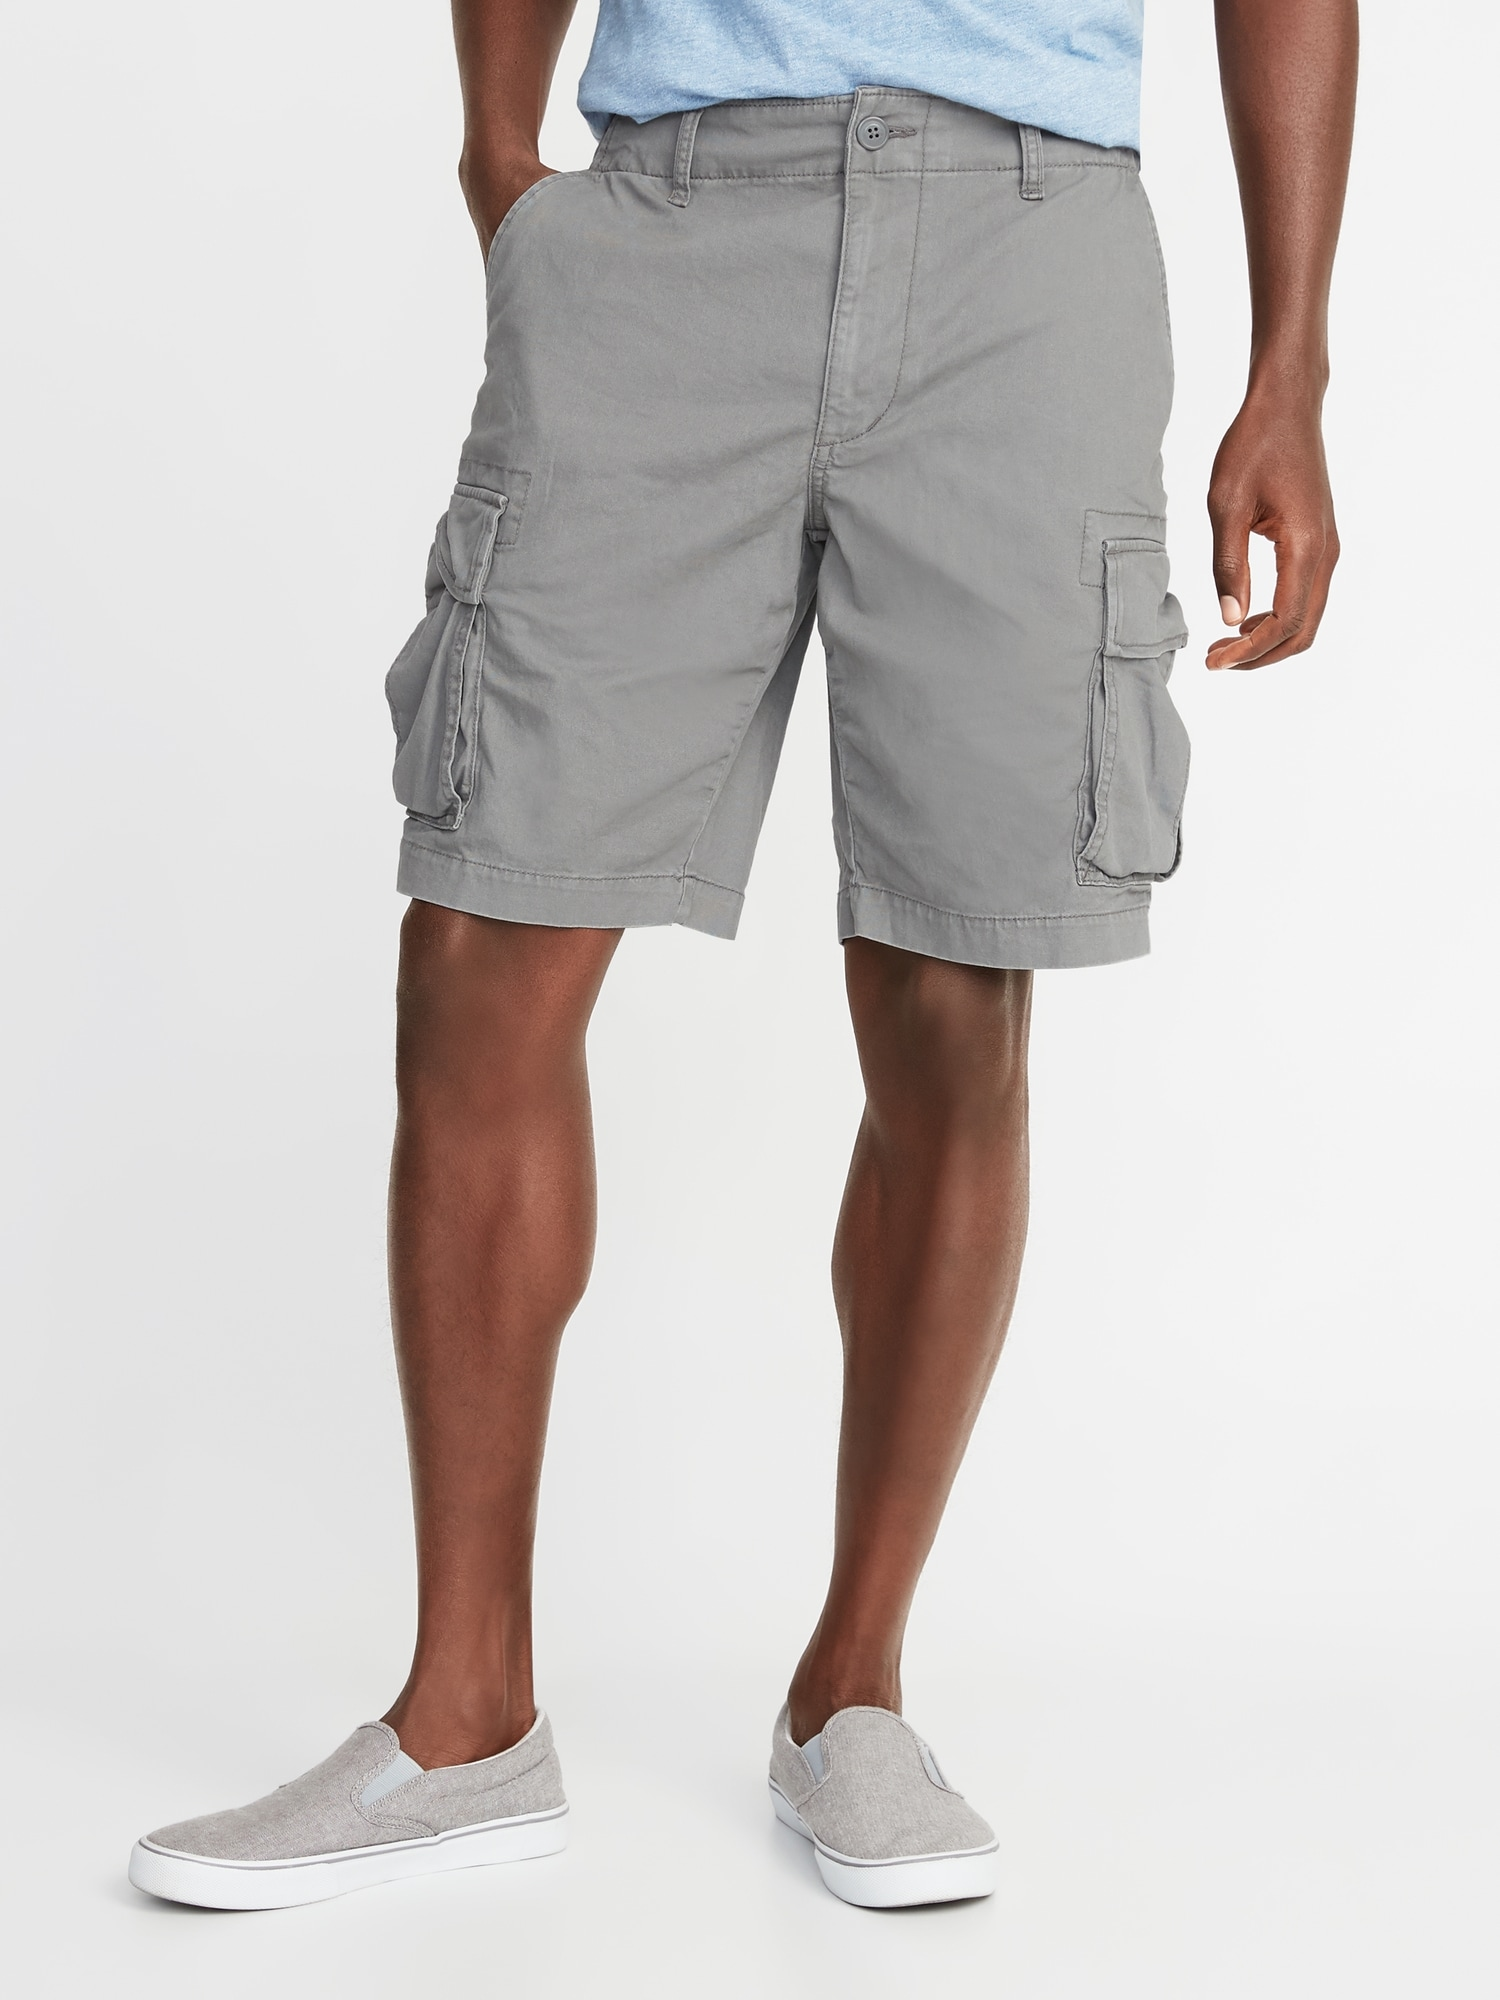 22e4782358 Lived-In Built-In Flex Cargo Shorts for Men - 10-inch inseam | Old Navy